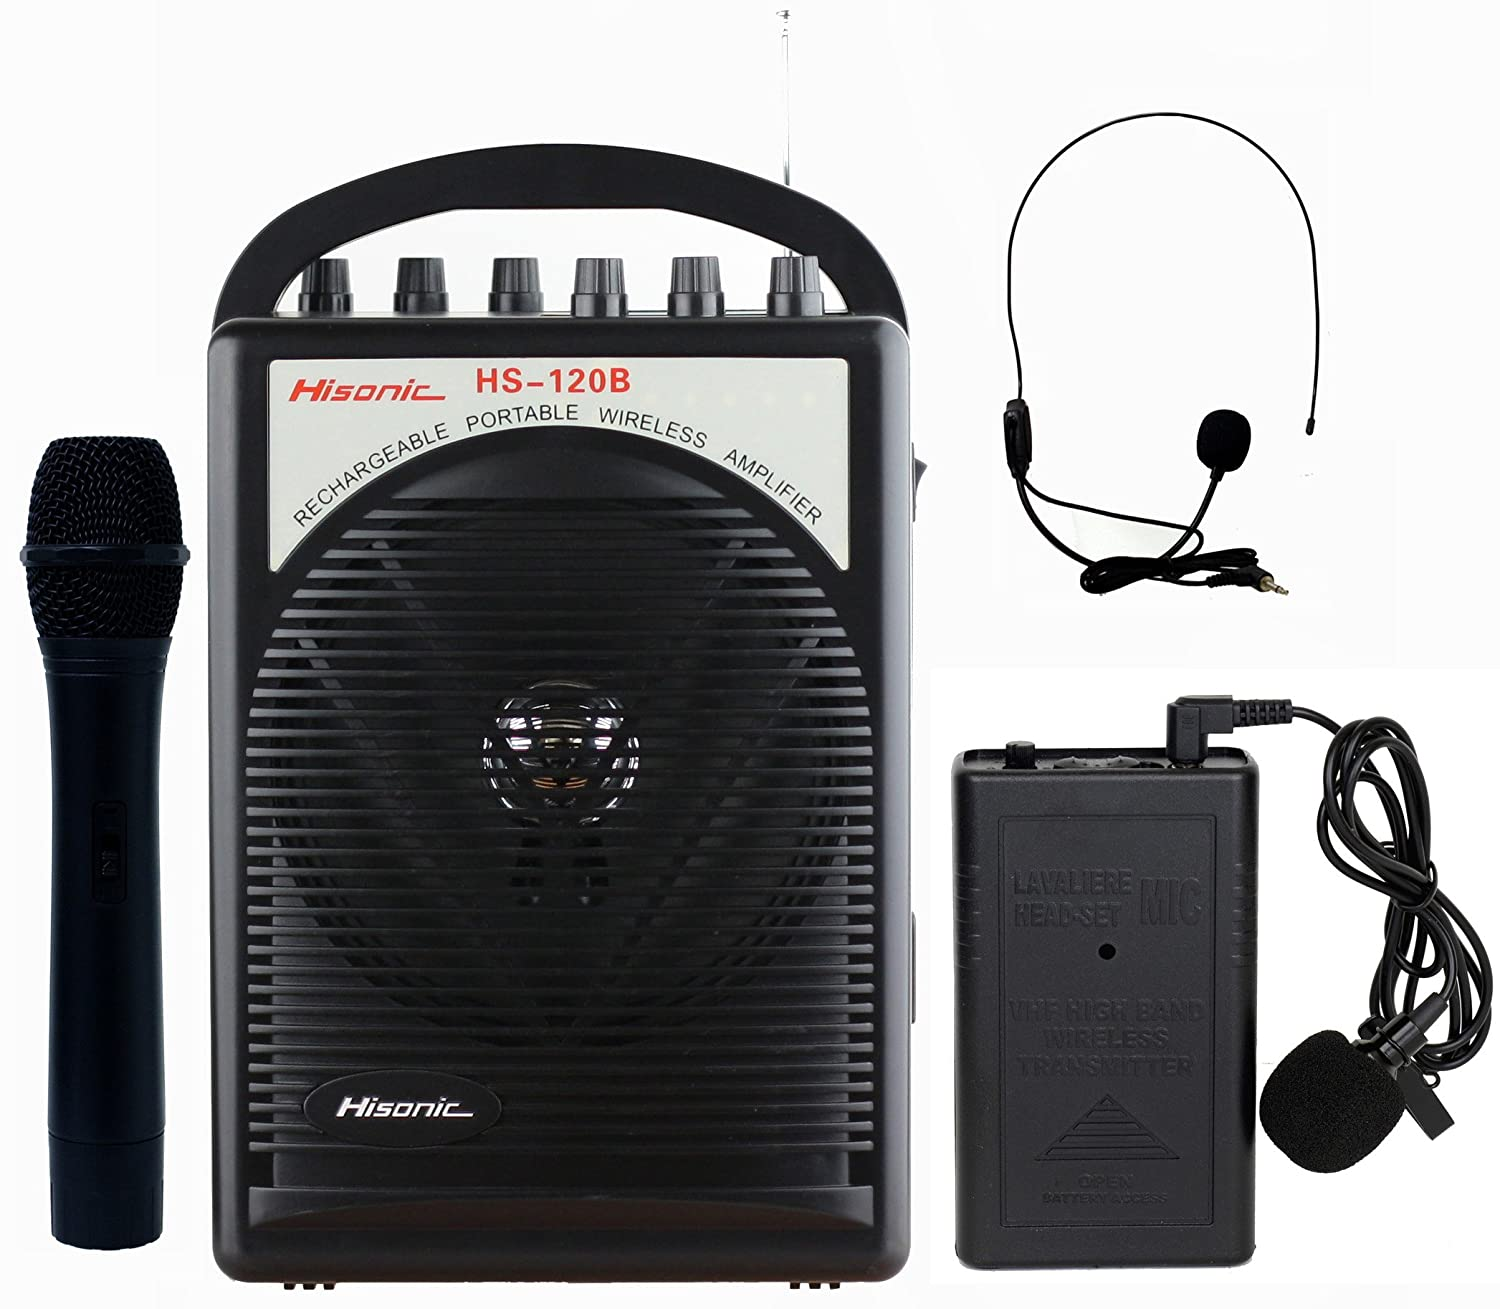 Portable Pa System With Wireless Microphone India Wire Center Circuits Gt On Off Temperature Control Circuit L45153 Nextgr Amazon Com Hisonic Hs120b Lithium Battery Rechargeable Rh Chiayo